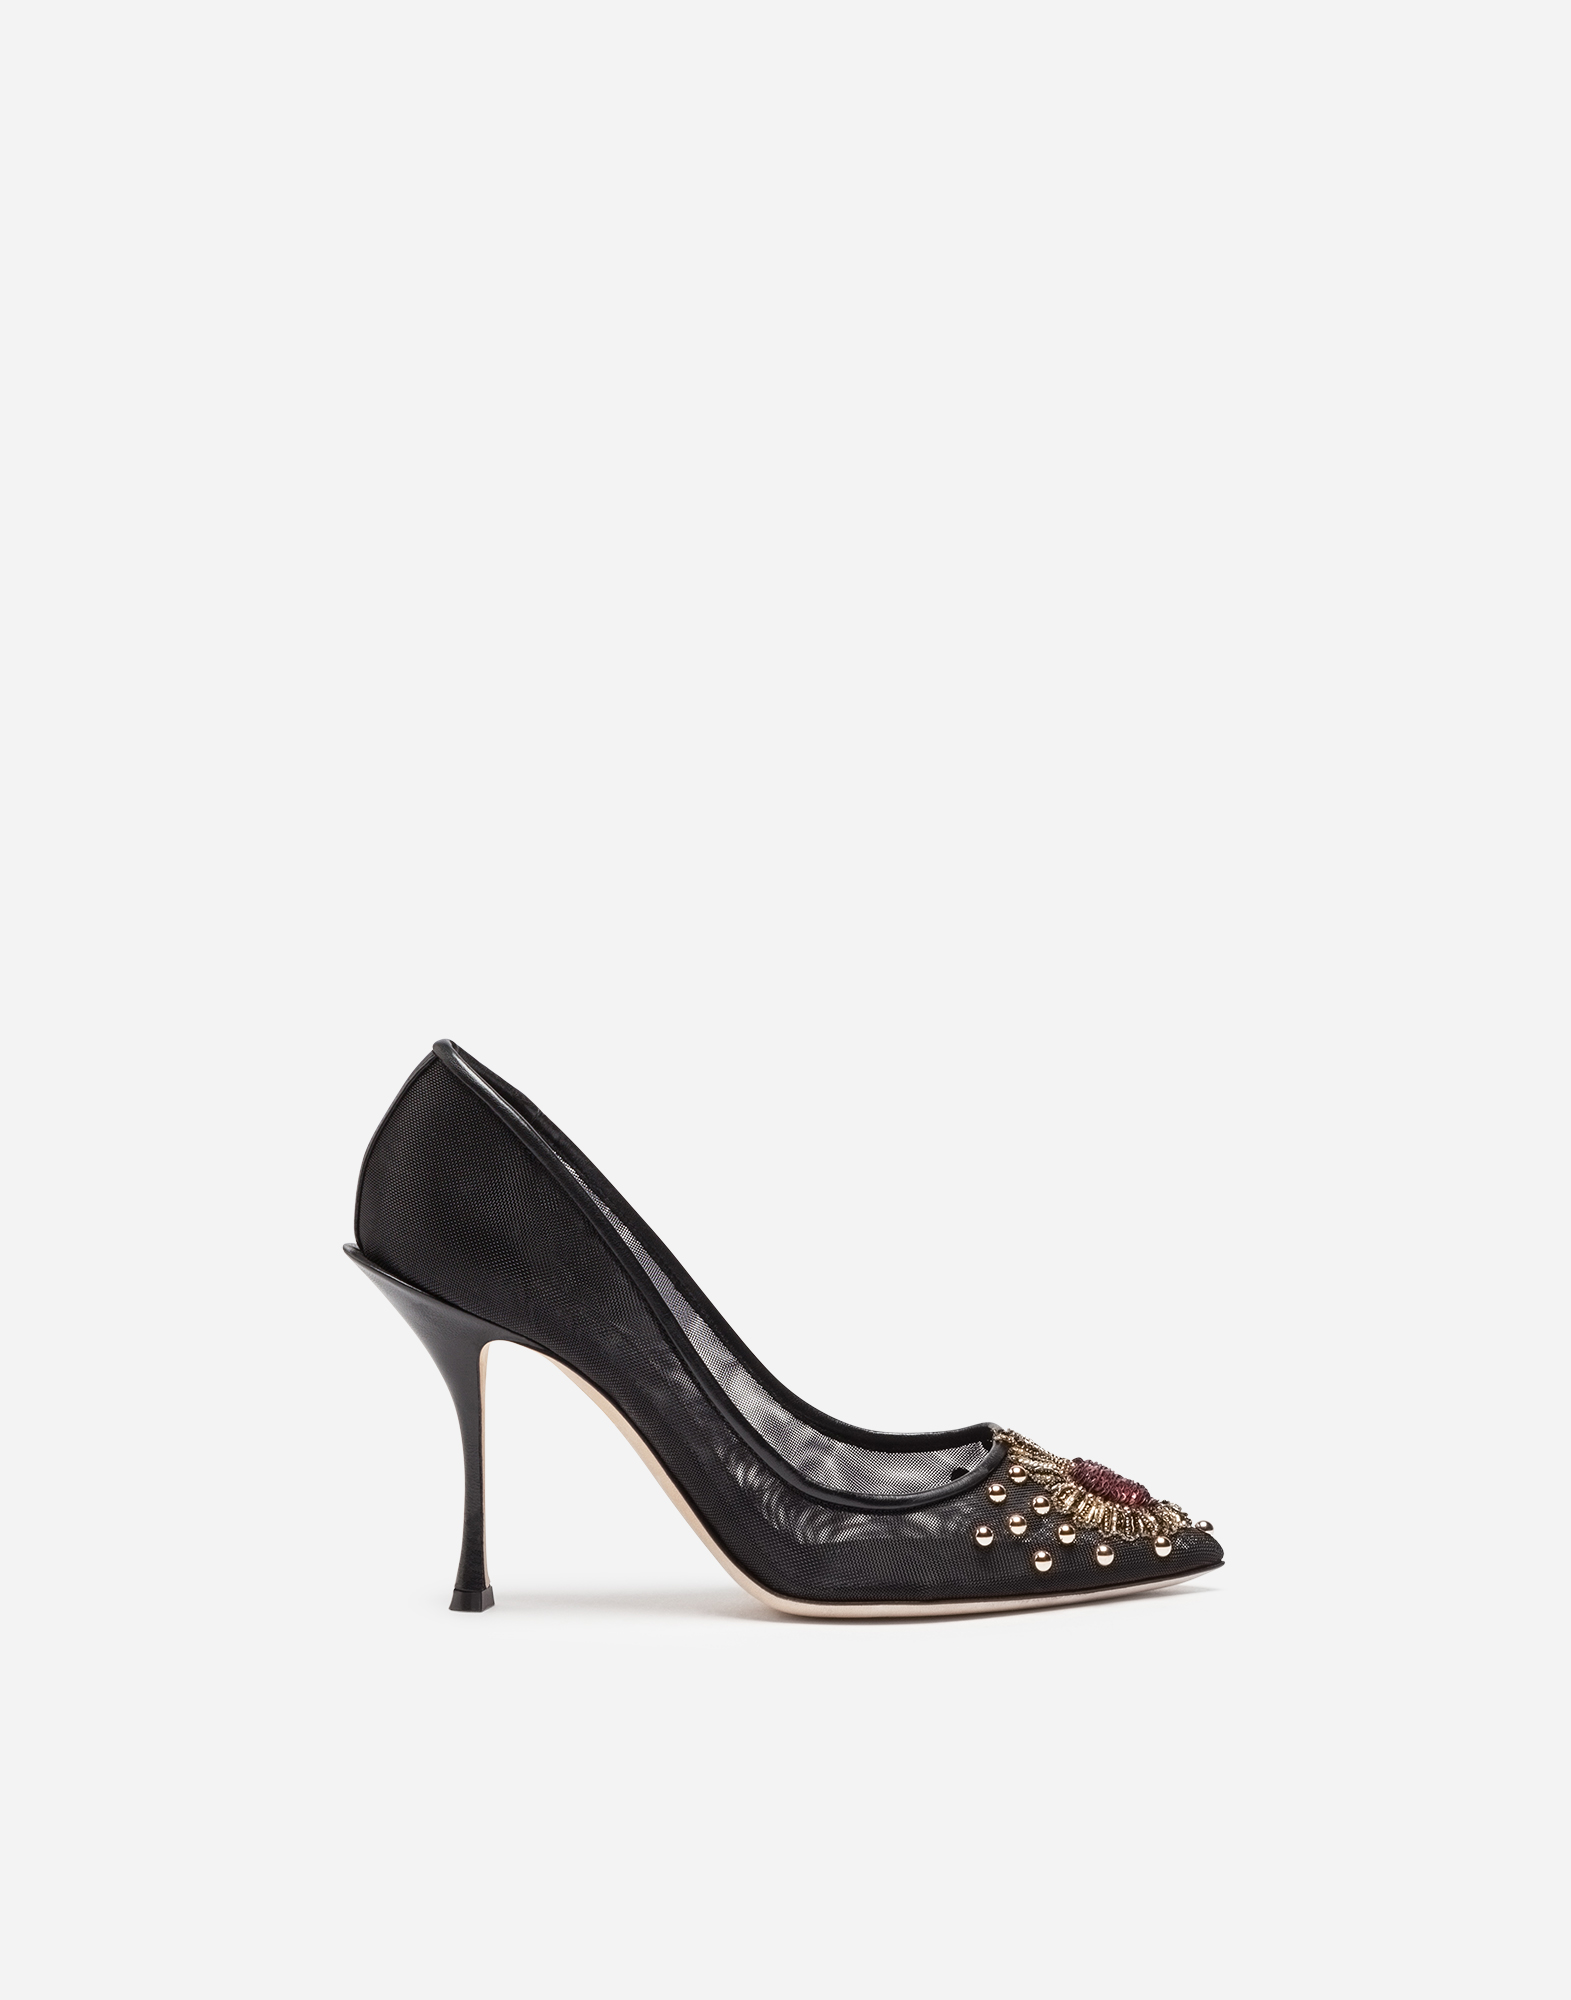 MESH PUMPS WITH EMBROIDERY AND APPLIQUÉS